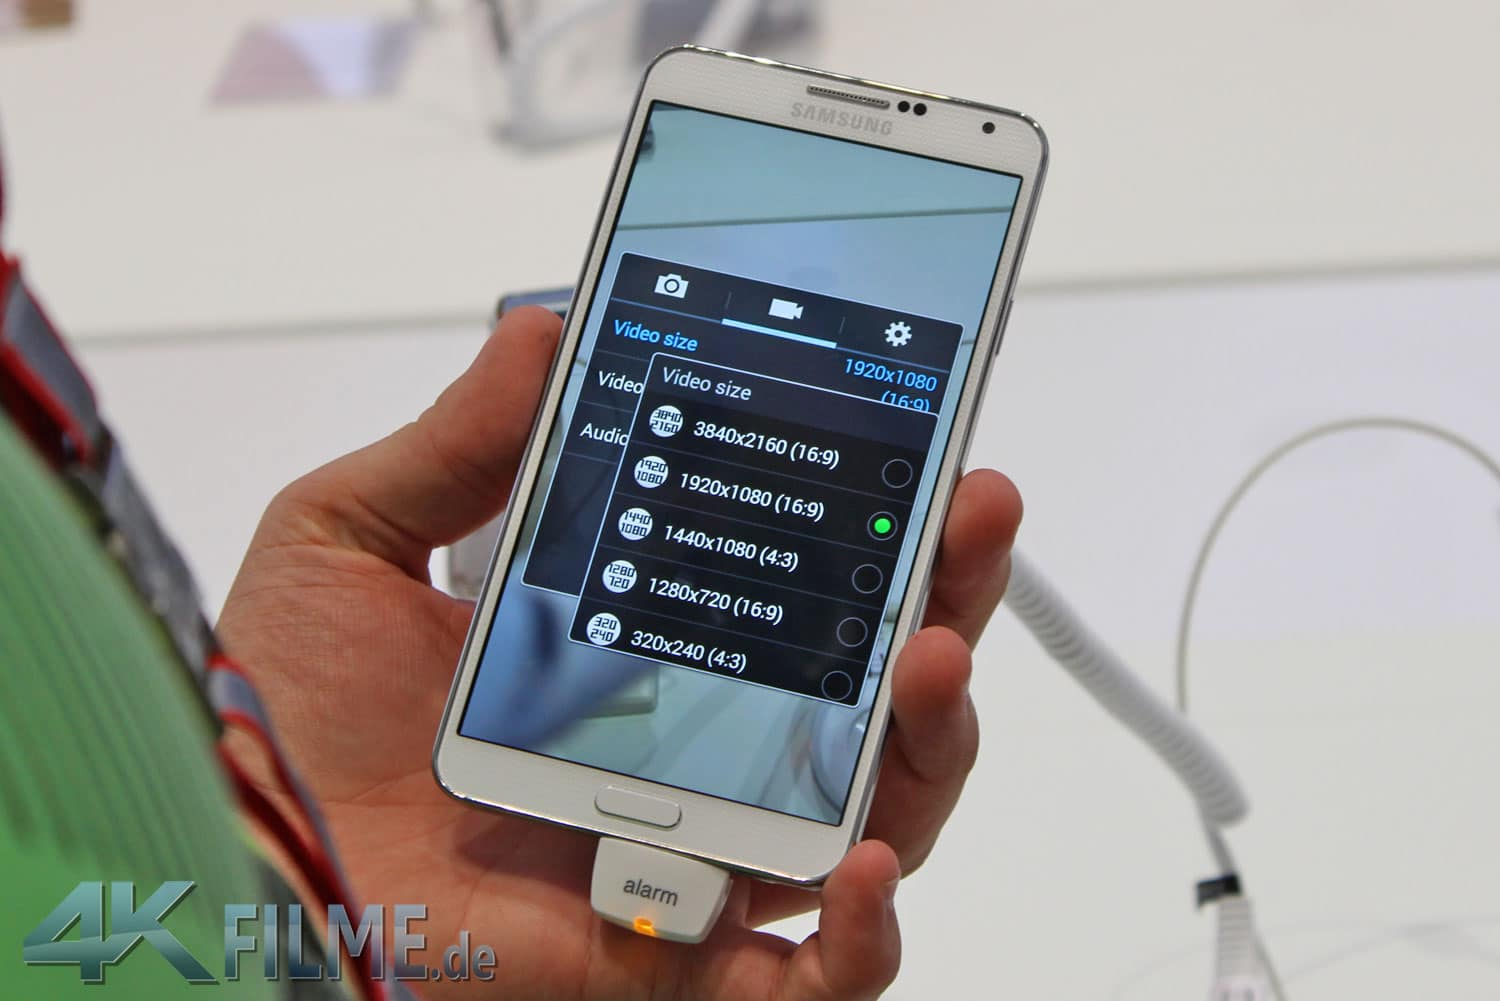 Galaxy Note 3 Frontansicht 4K Videofunktion